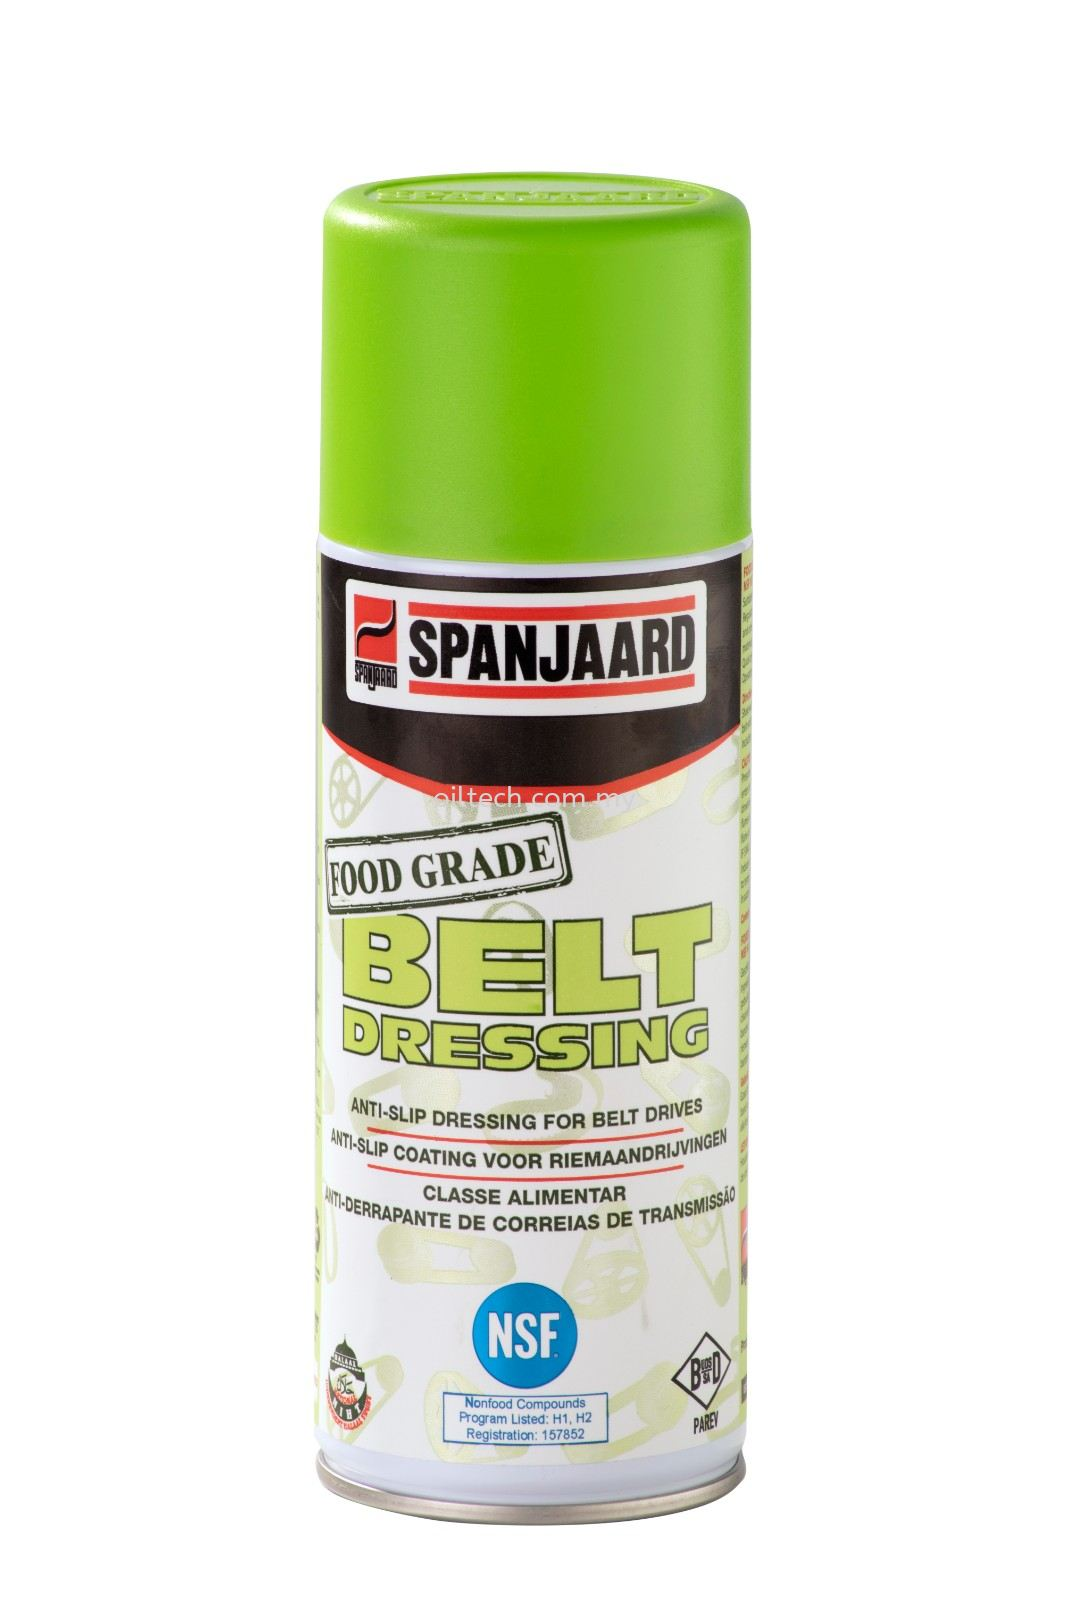 Food Grade Belt Dressing Spray - Spanjaard Malaysia